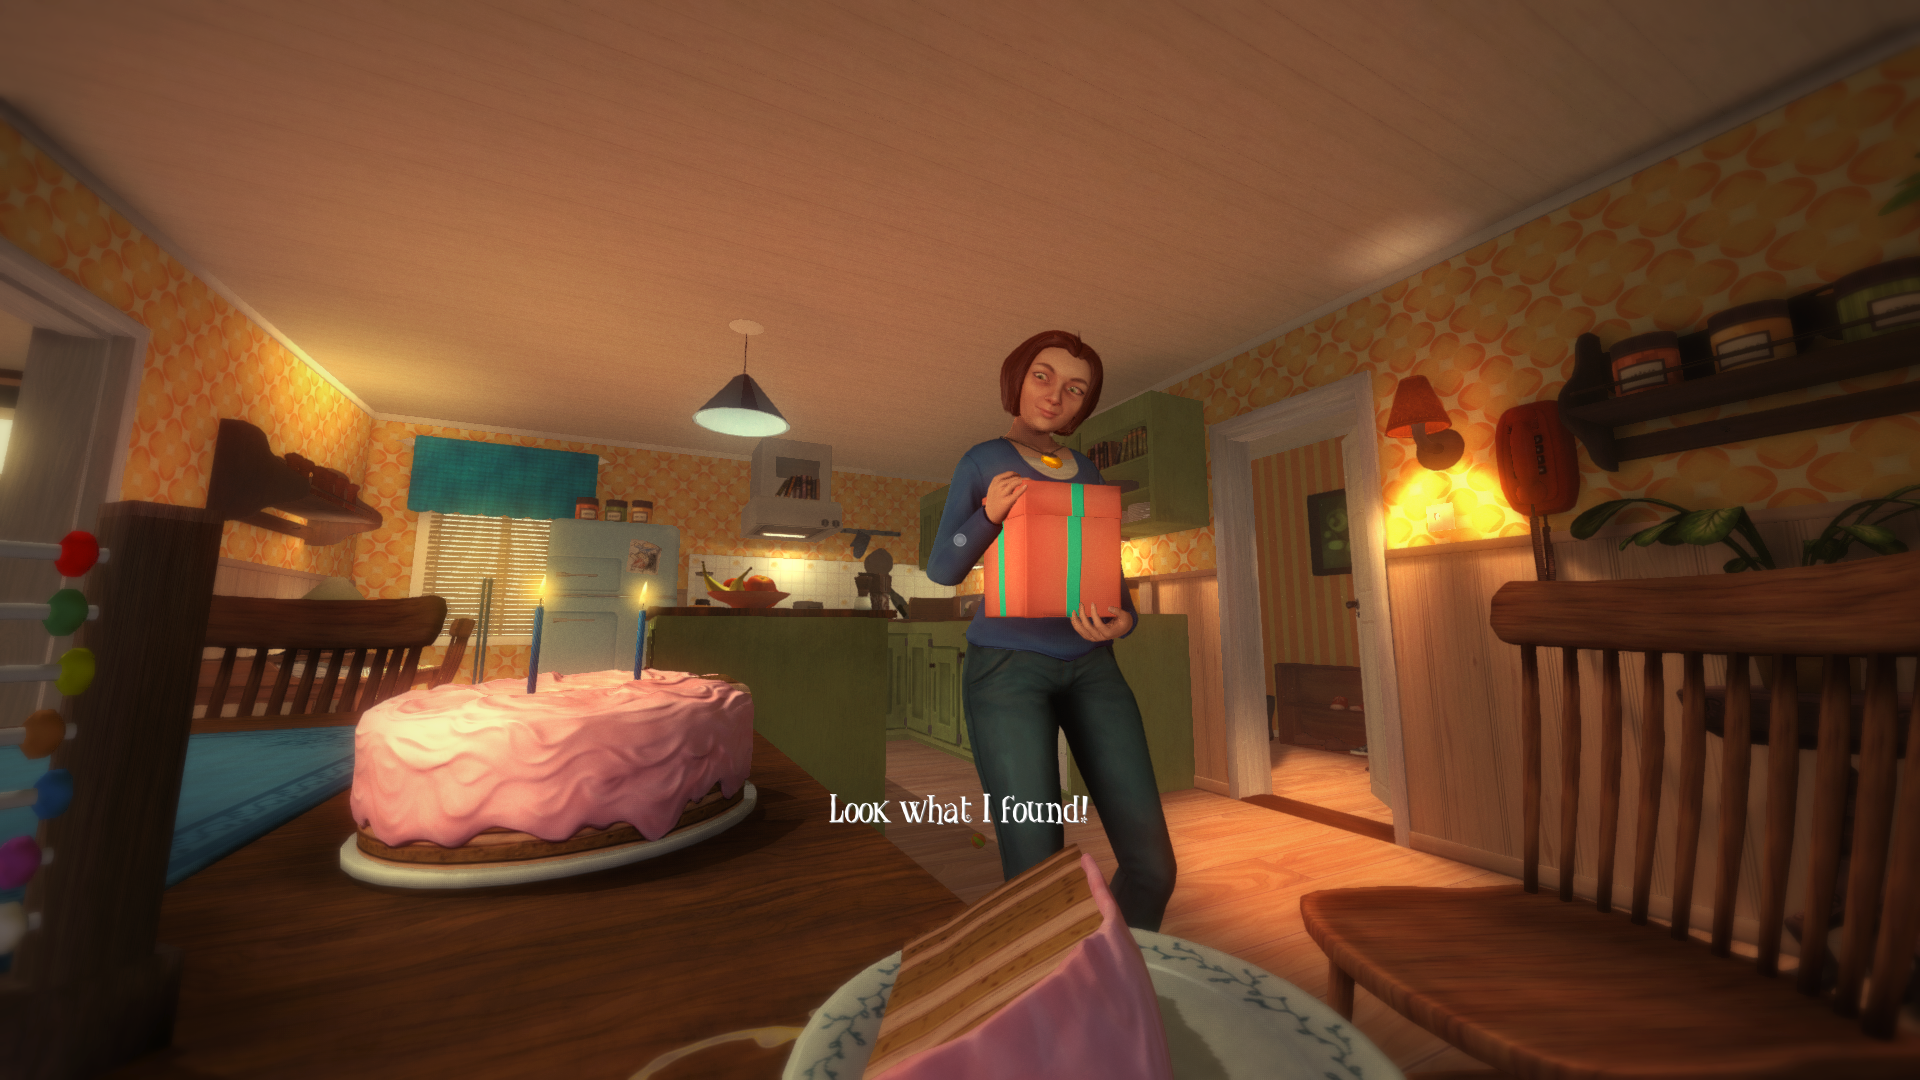 https://www.mobygames.com/images/shots/l/726098-among-the-sleep-windows-screenshot-you-are-2-and-mother-treats.png